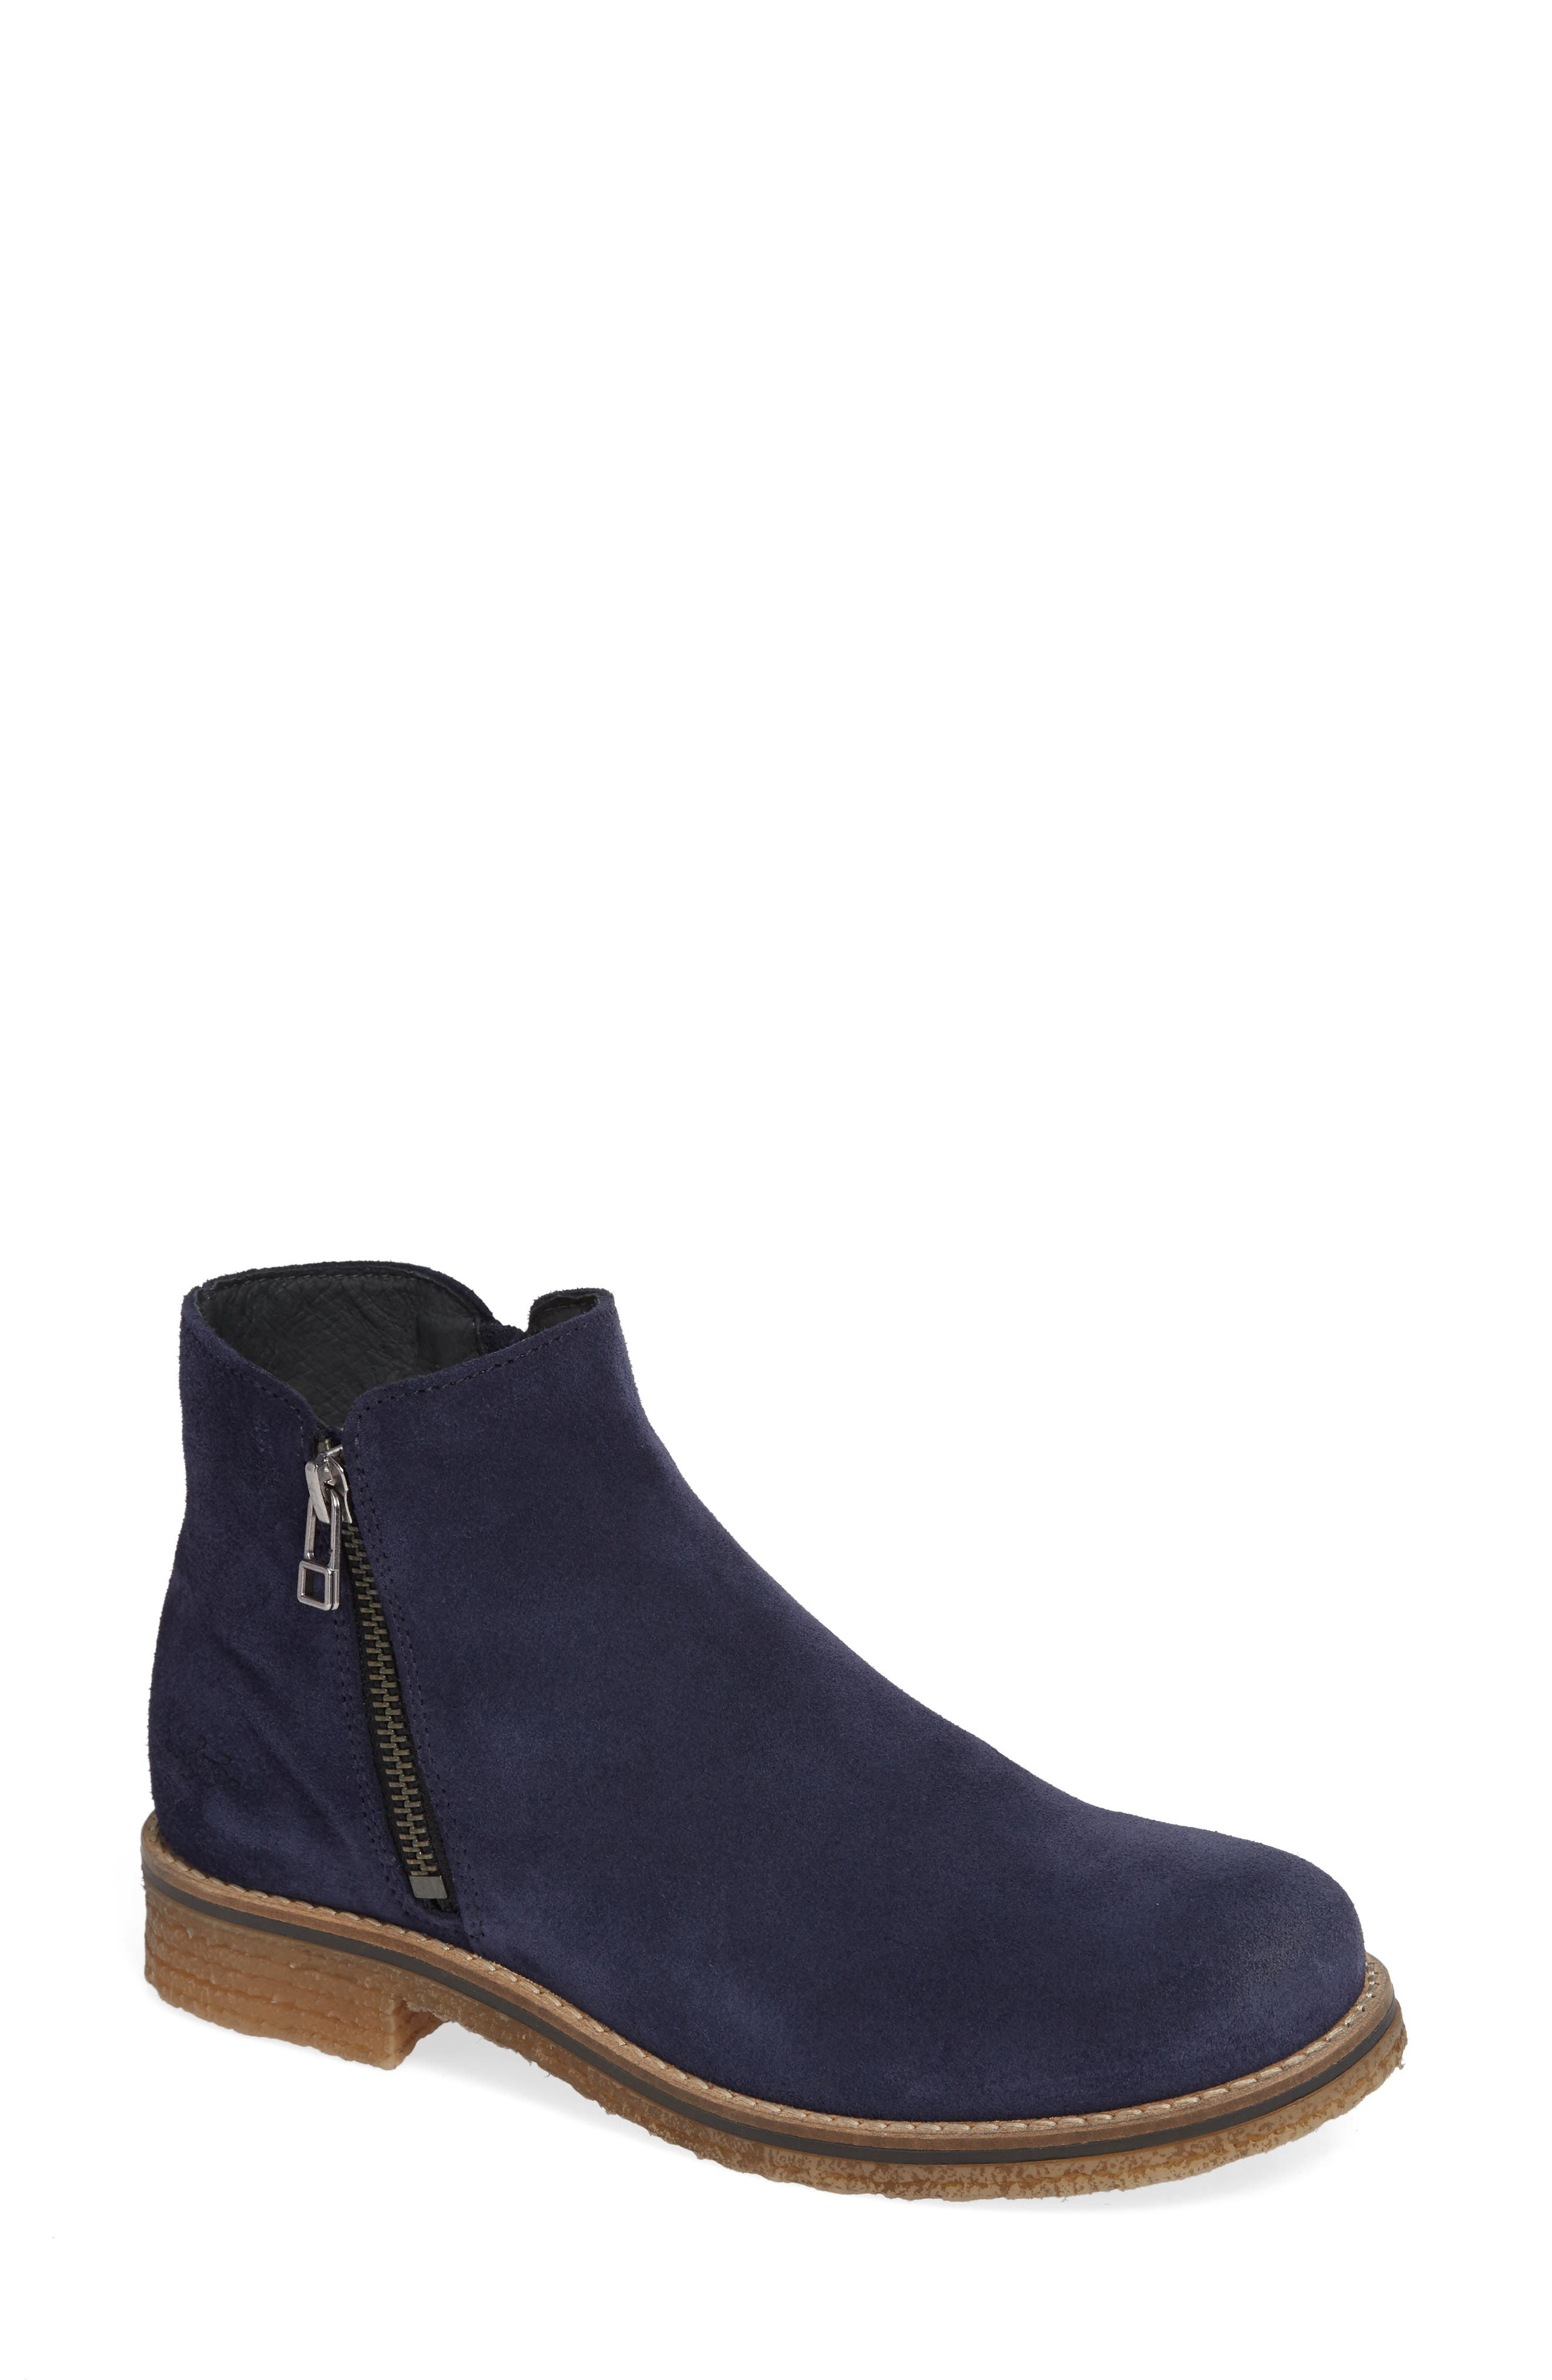 Bos. & Co. Buss Ankle Boot, Blue